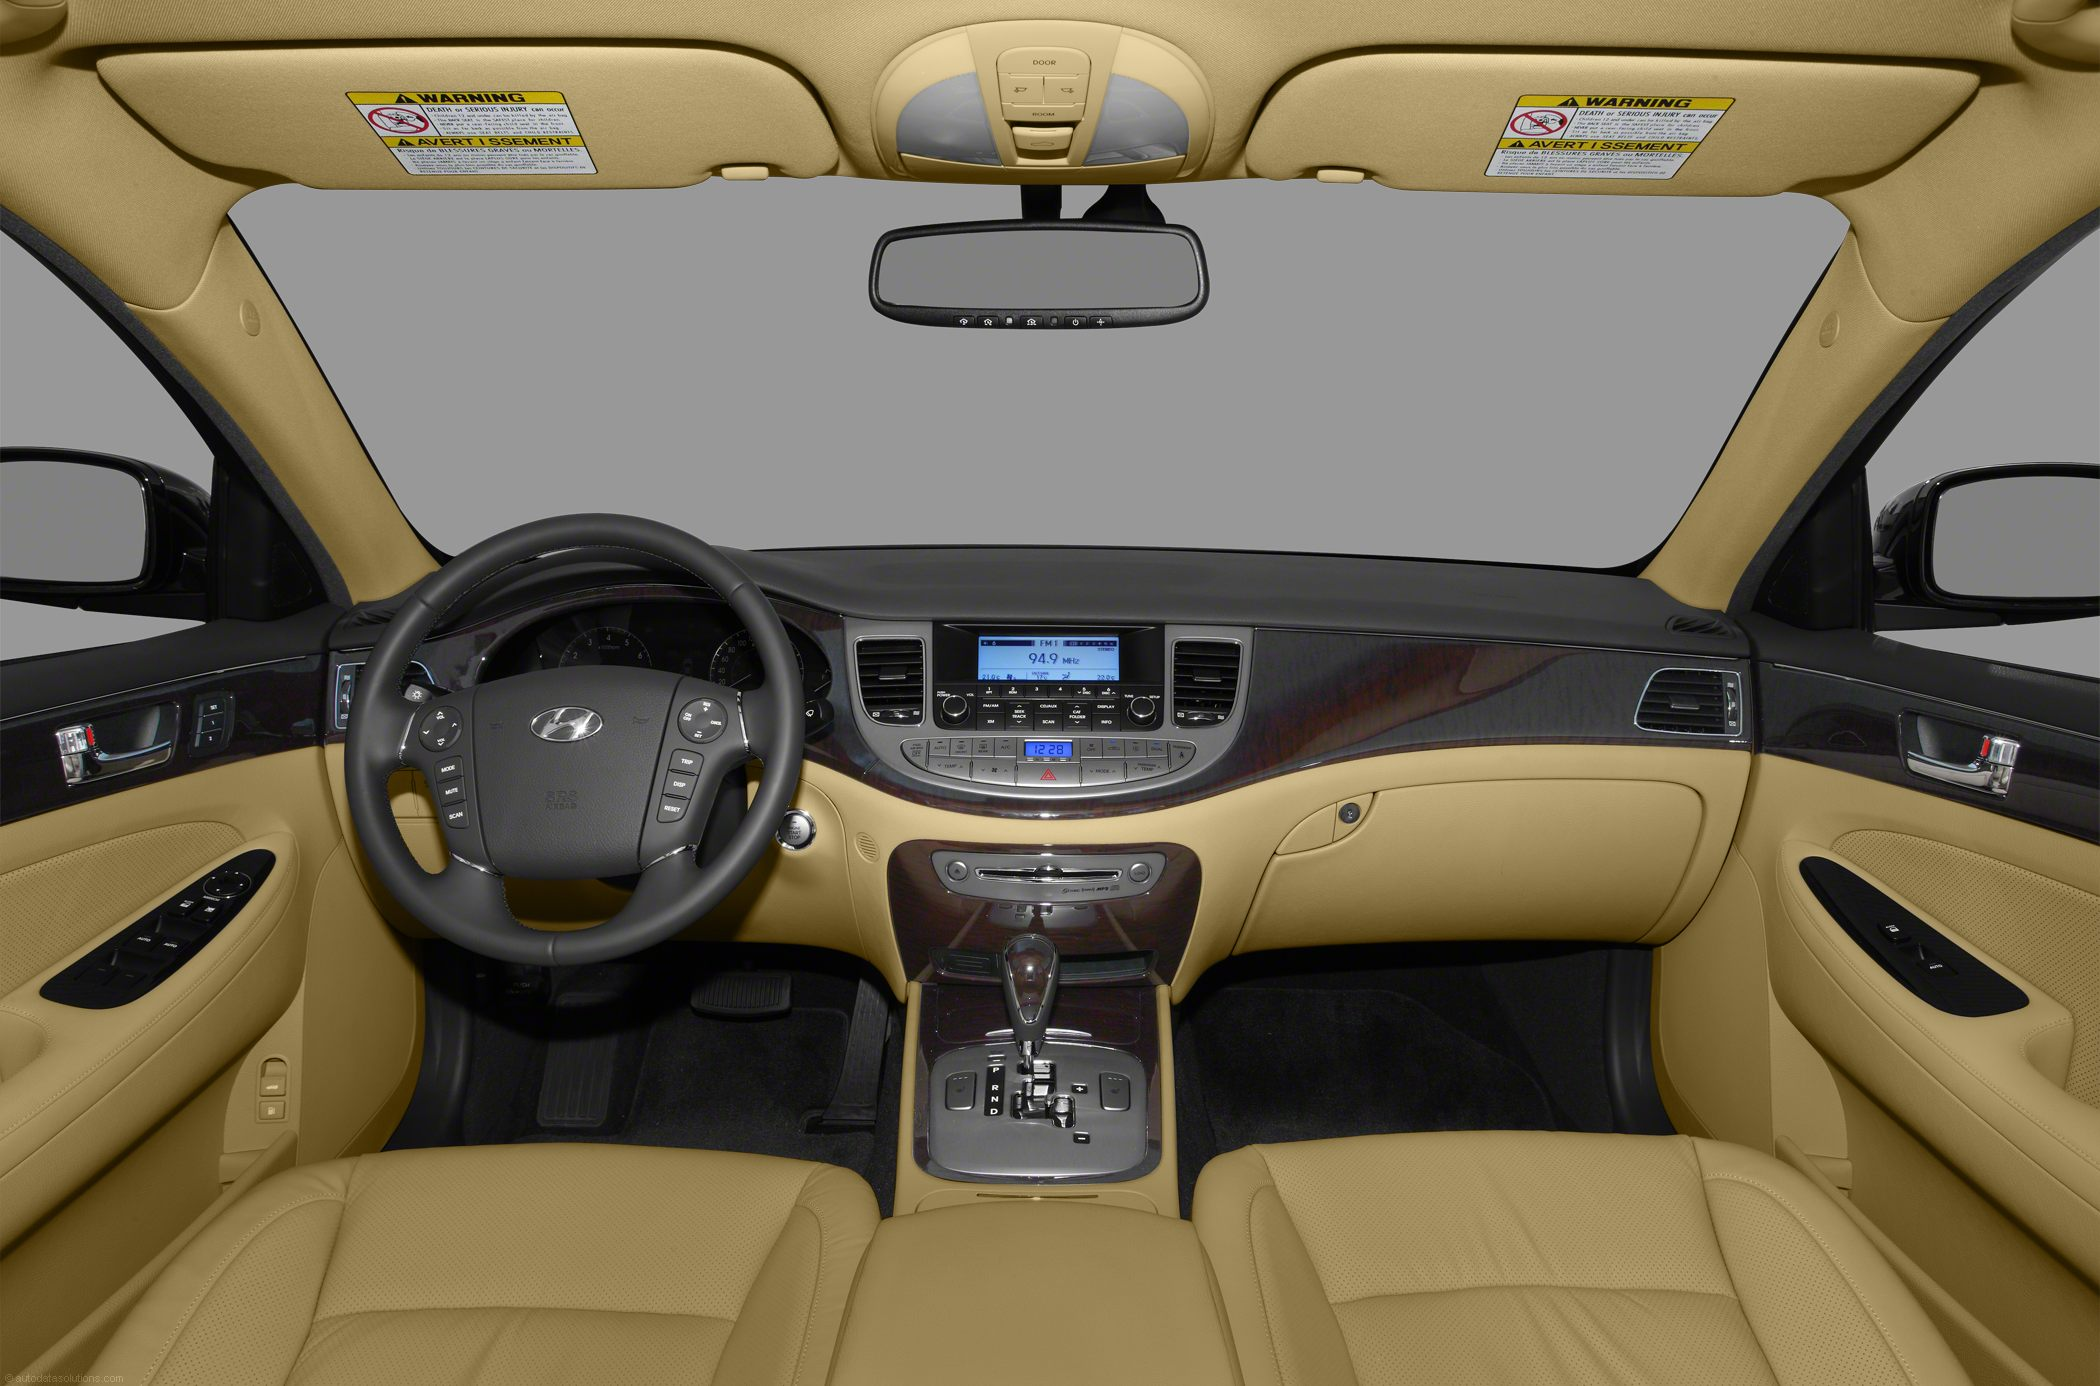 r coupe specifications en the guide hyundai makes genesis car spec price